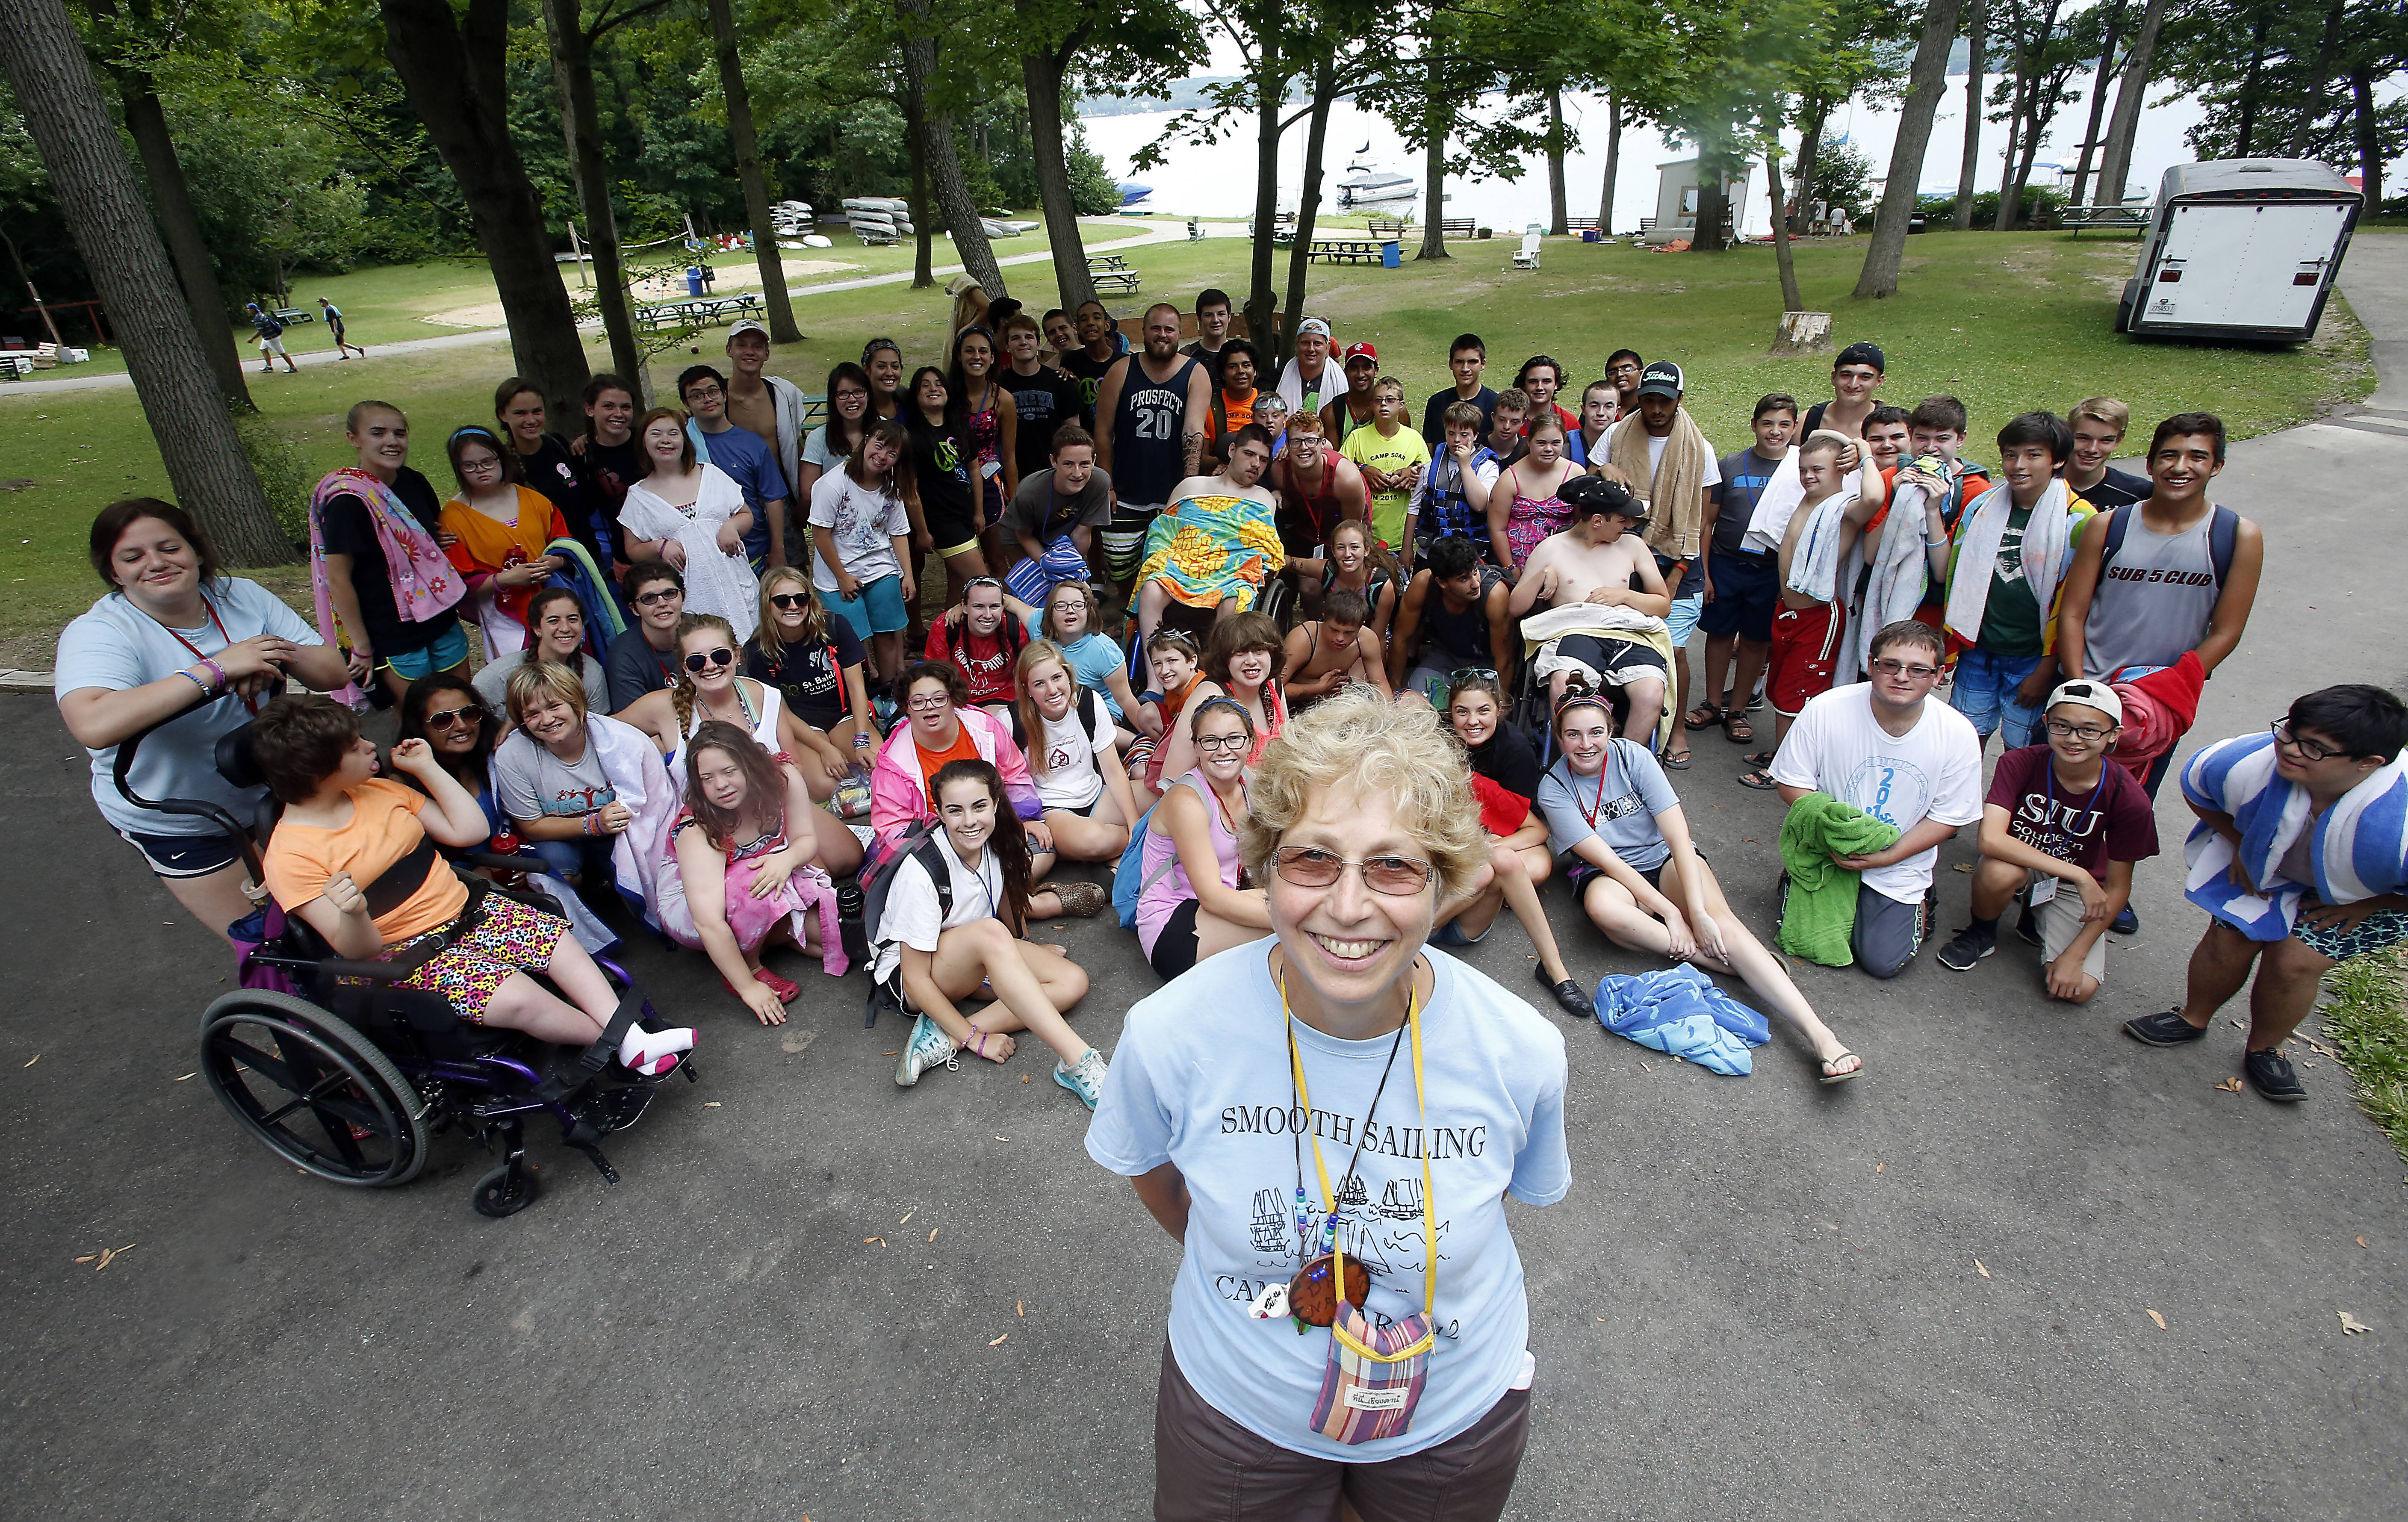 The first Camp SOAR in 2000 featured 19 young campers with disabilities. The inspiration of Dr. Nancy Keck of Prospect Heights, the camp now boasts two weeklong sessions with nearly 60 campers and 90 counselors each week.